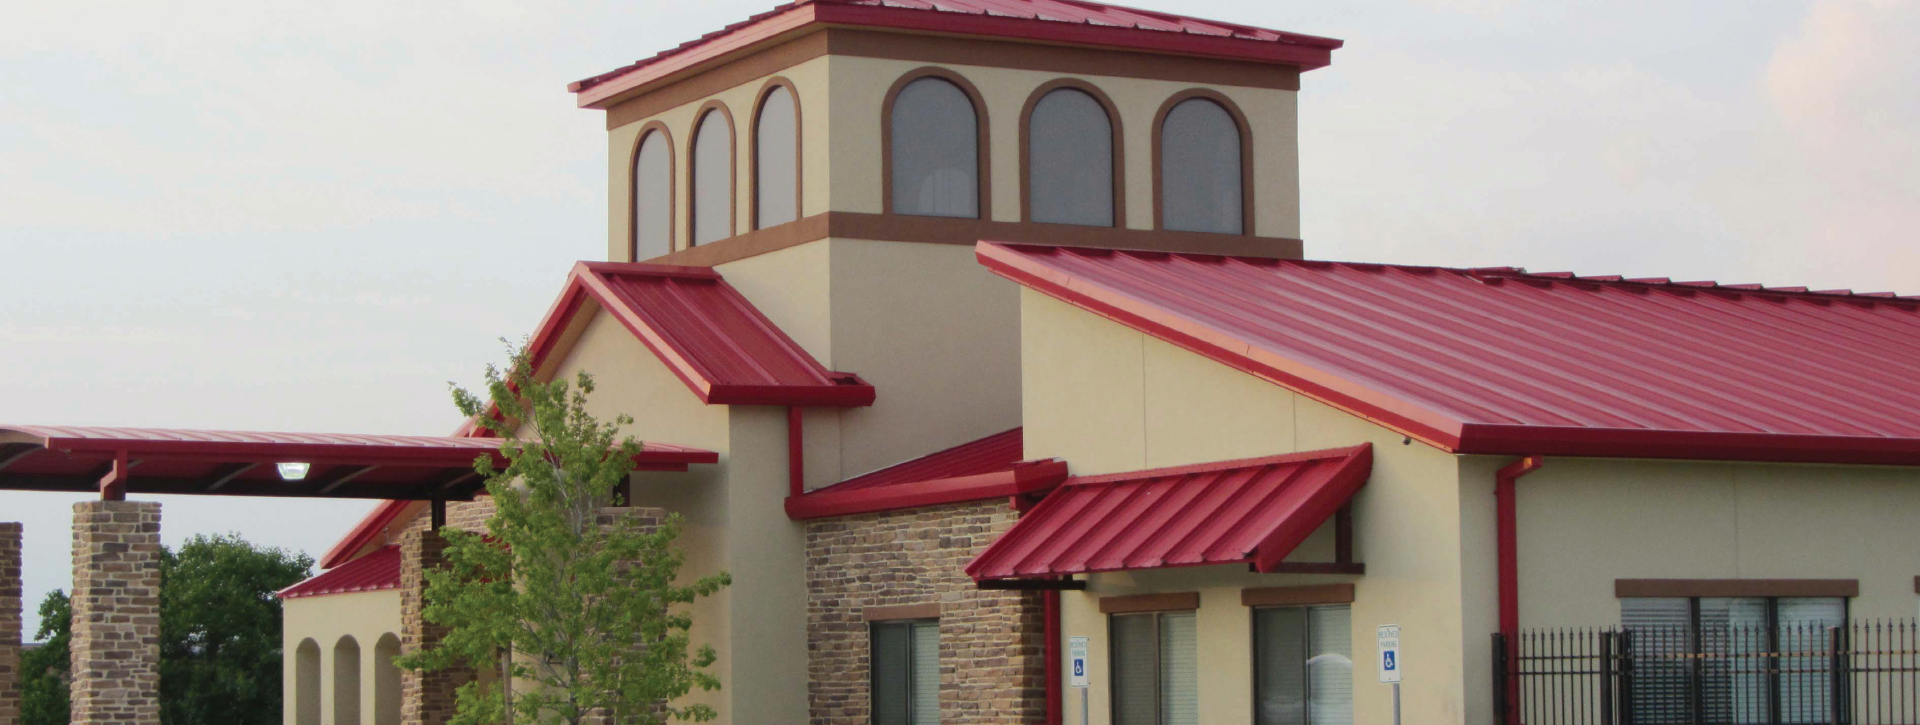 Ultra-Dek Snap-on Trapezoidal Metal Roof System   EXCEPTIONAL Metals